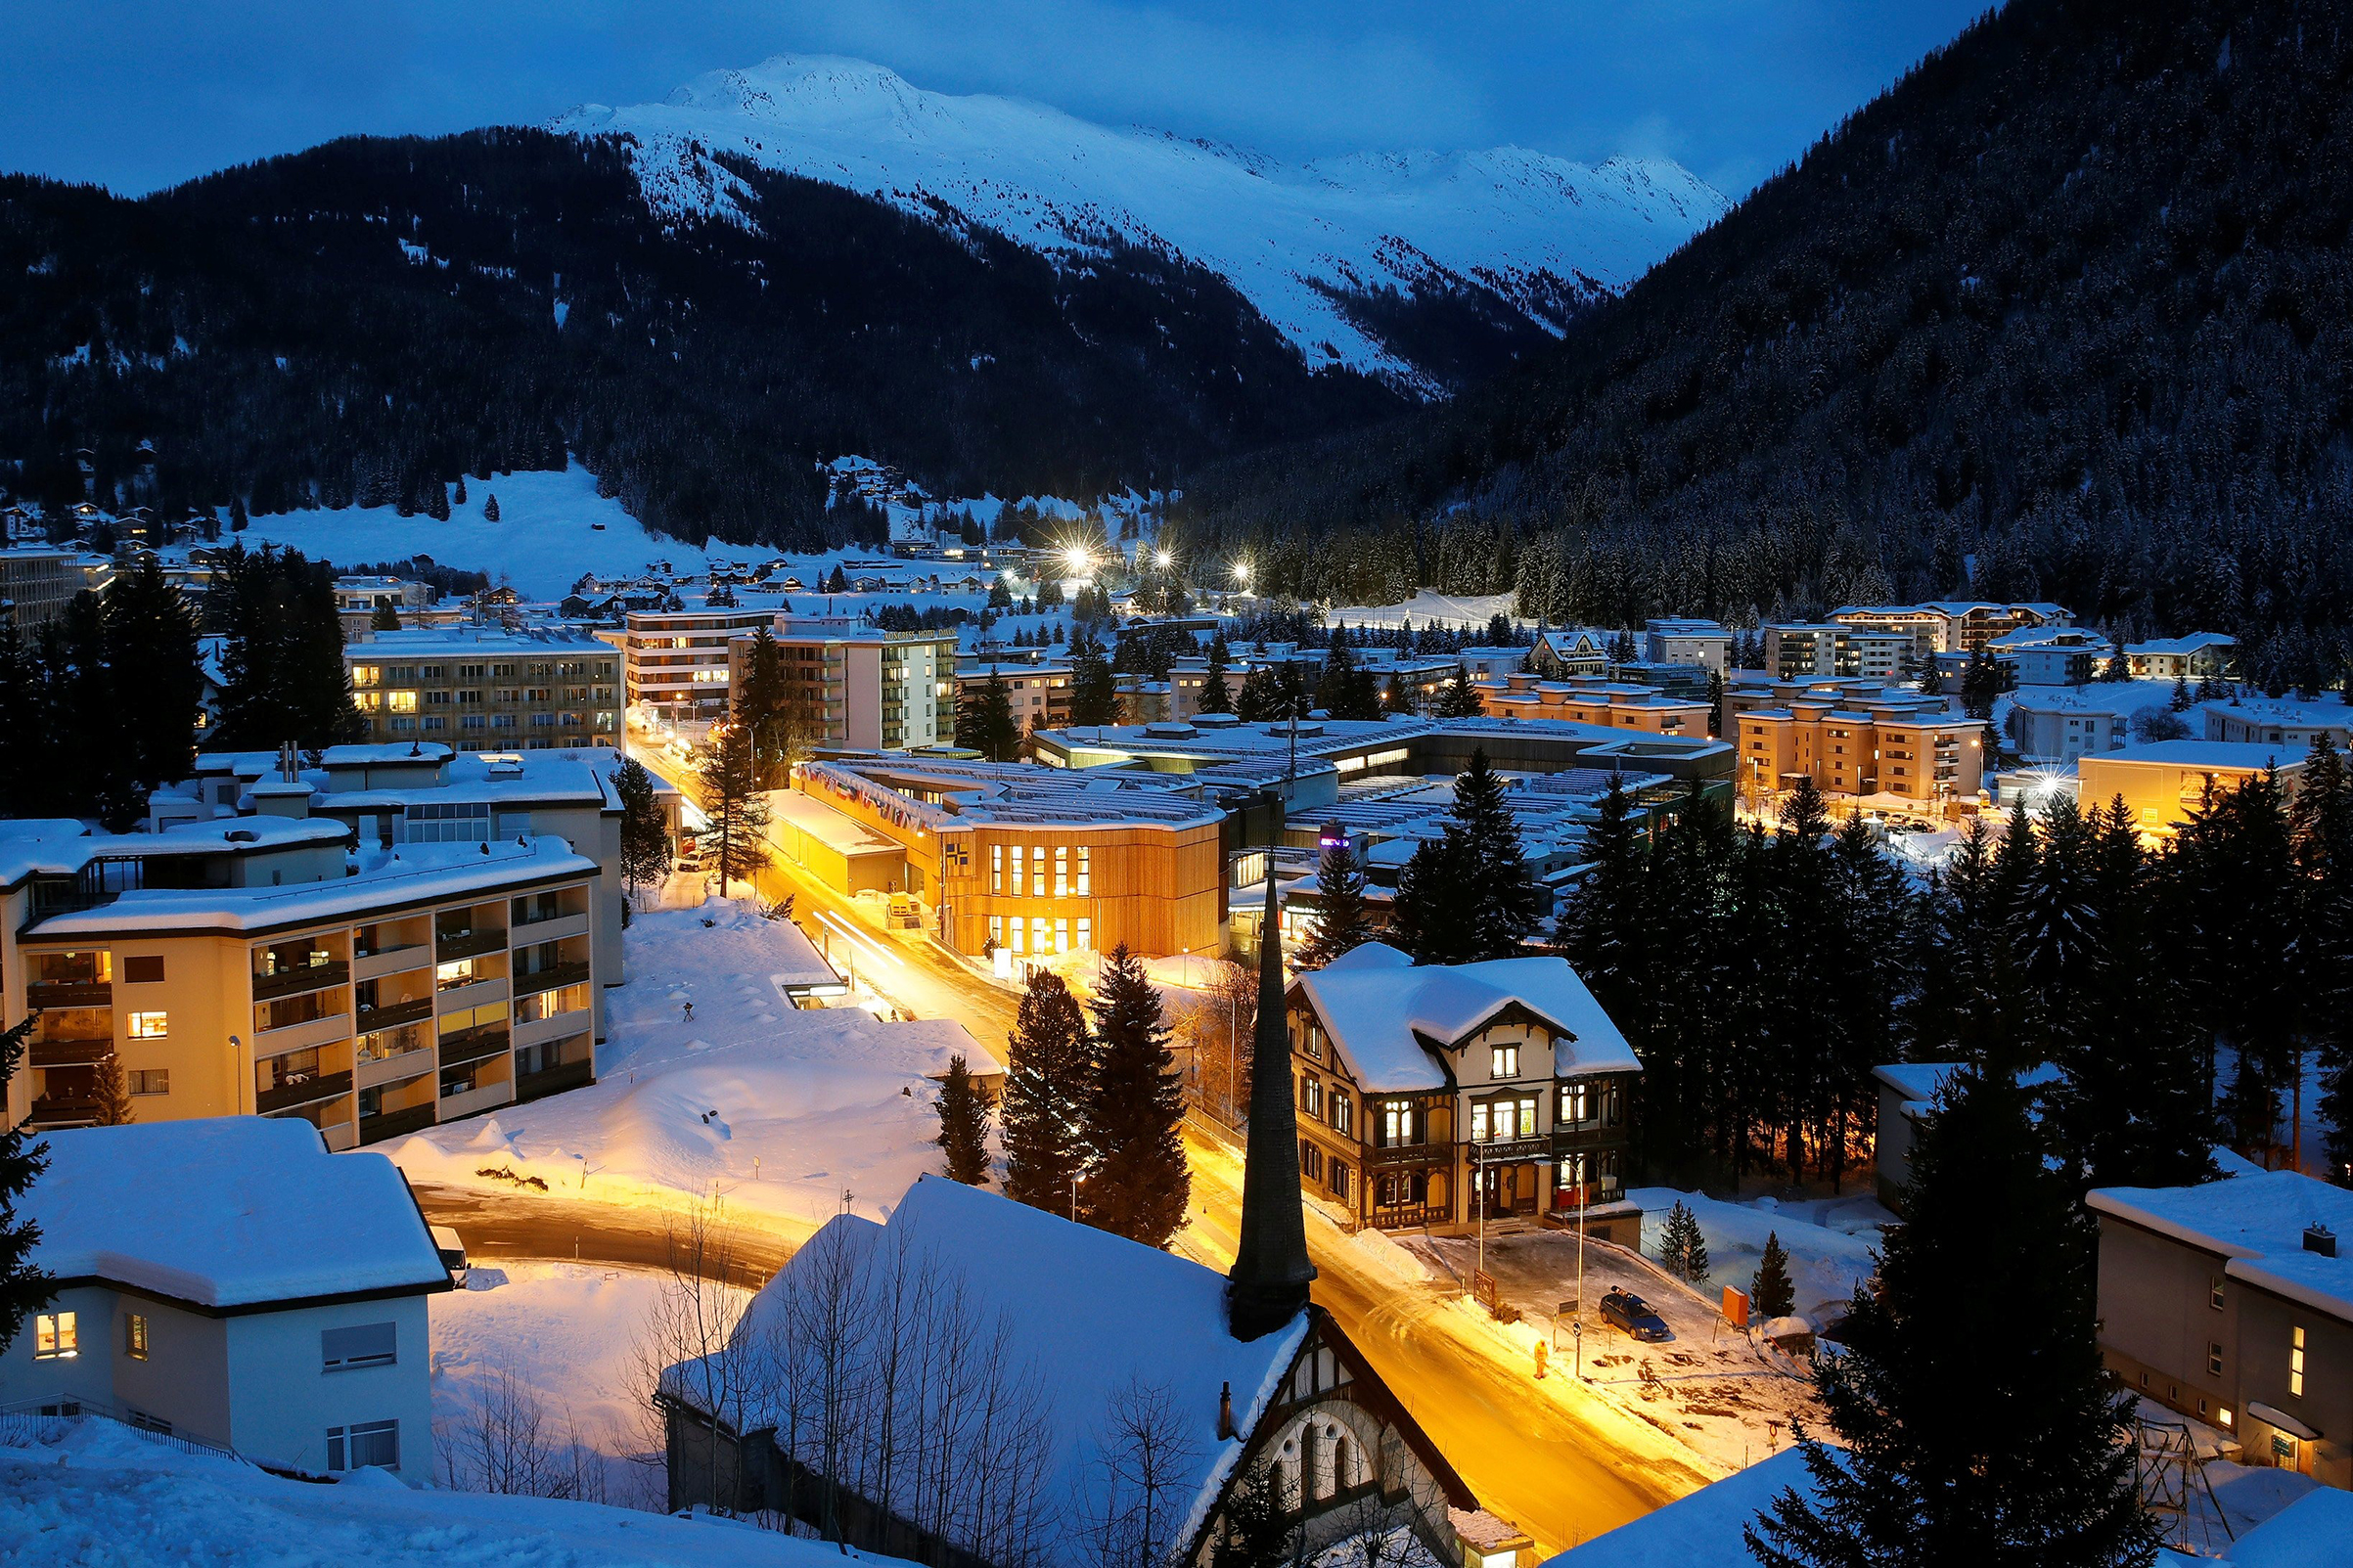 Nestled in the SwissAlps, Davos (pop.11,000) was best known as a ski resort until the World Economic Forum made it synonymous with the global elite